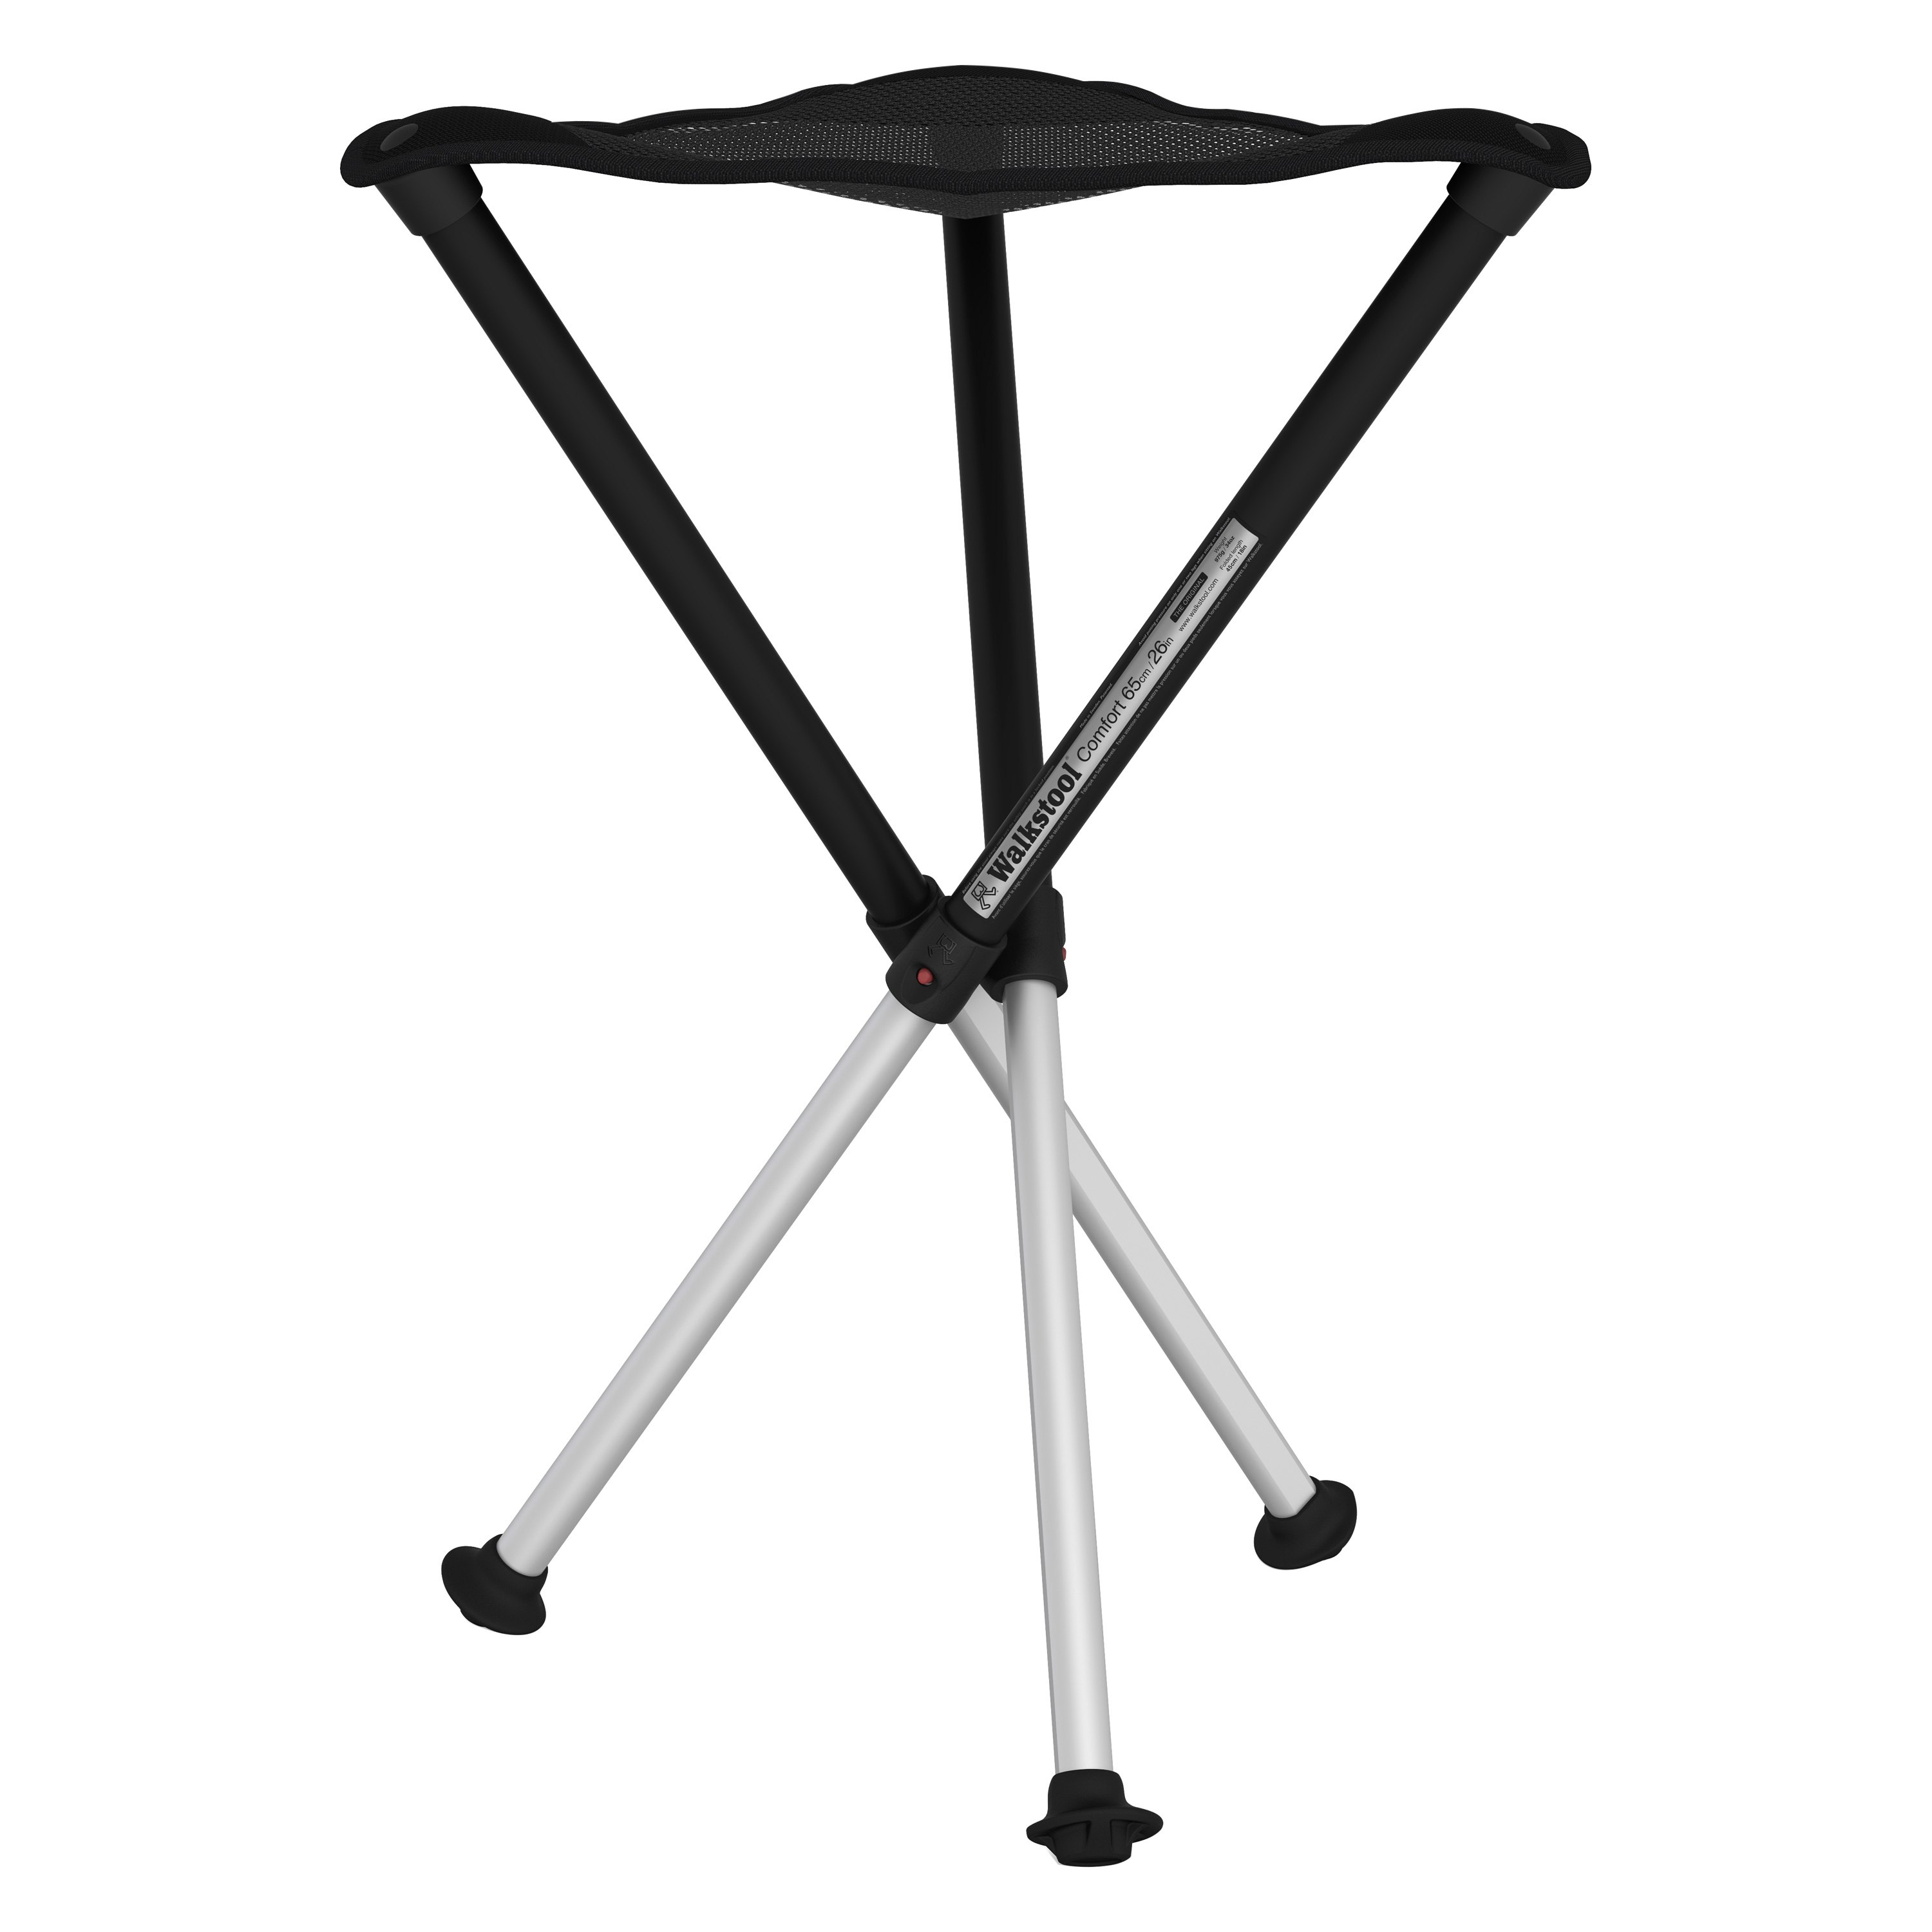 Awe Inspiring Walkstool Comfort Tripod Stool Squirreltailoven Fun Painted Chair Ideas Images Squirreltailovenorg